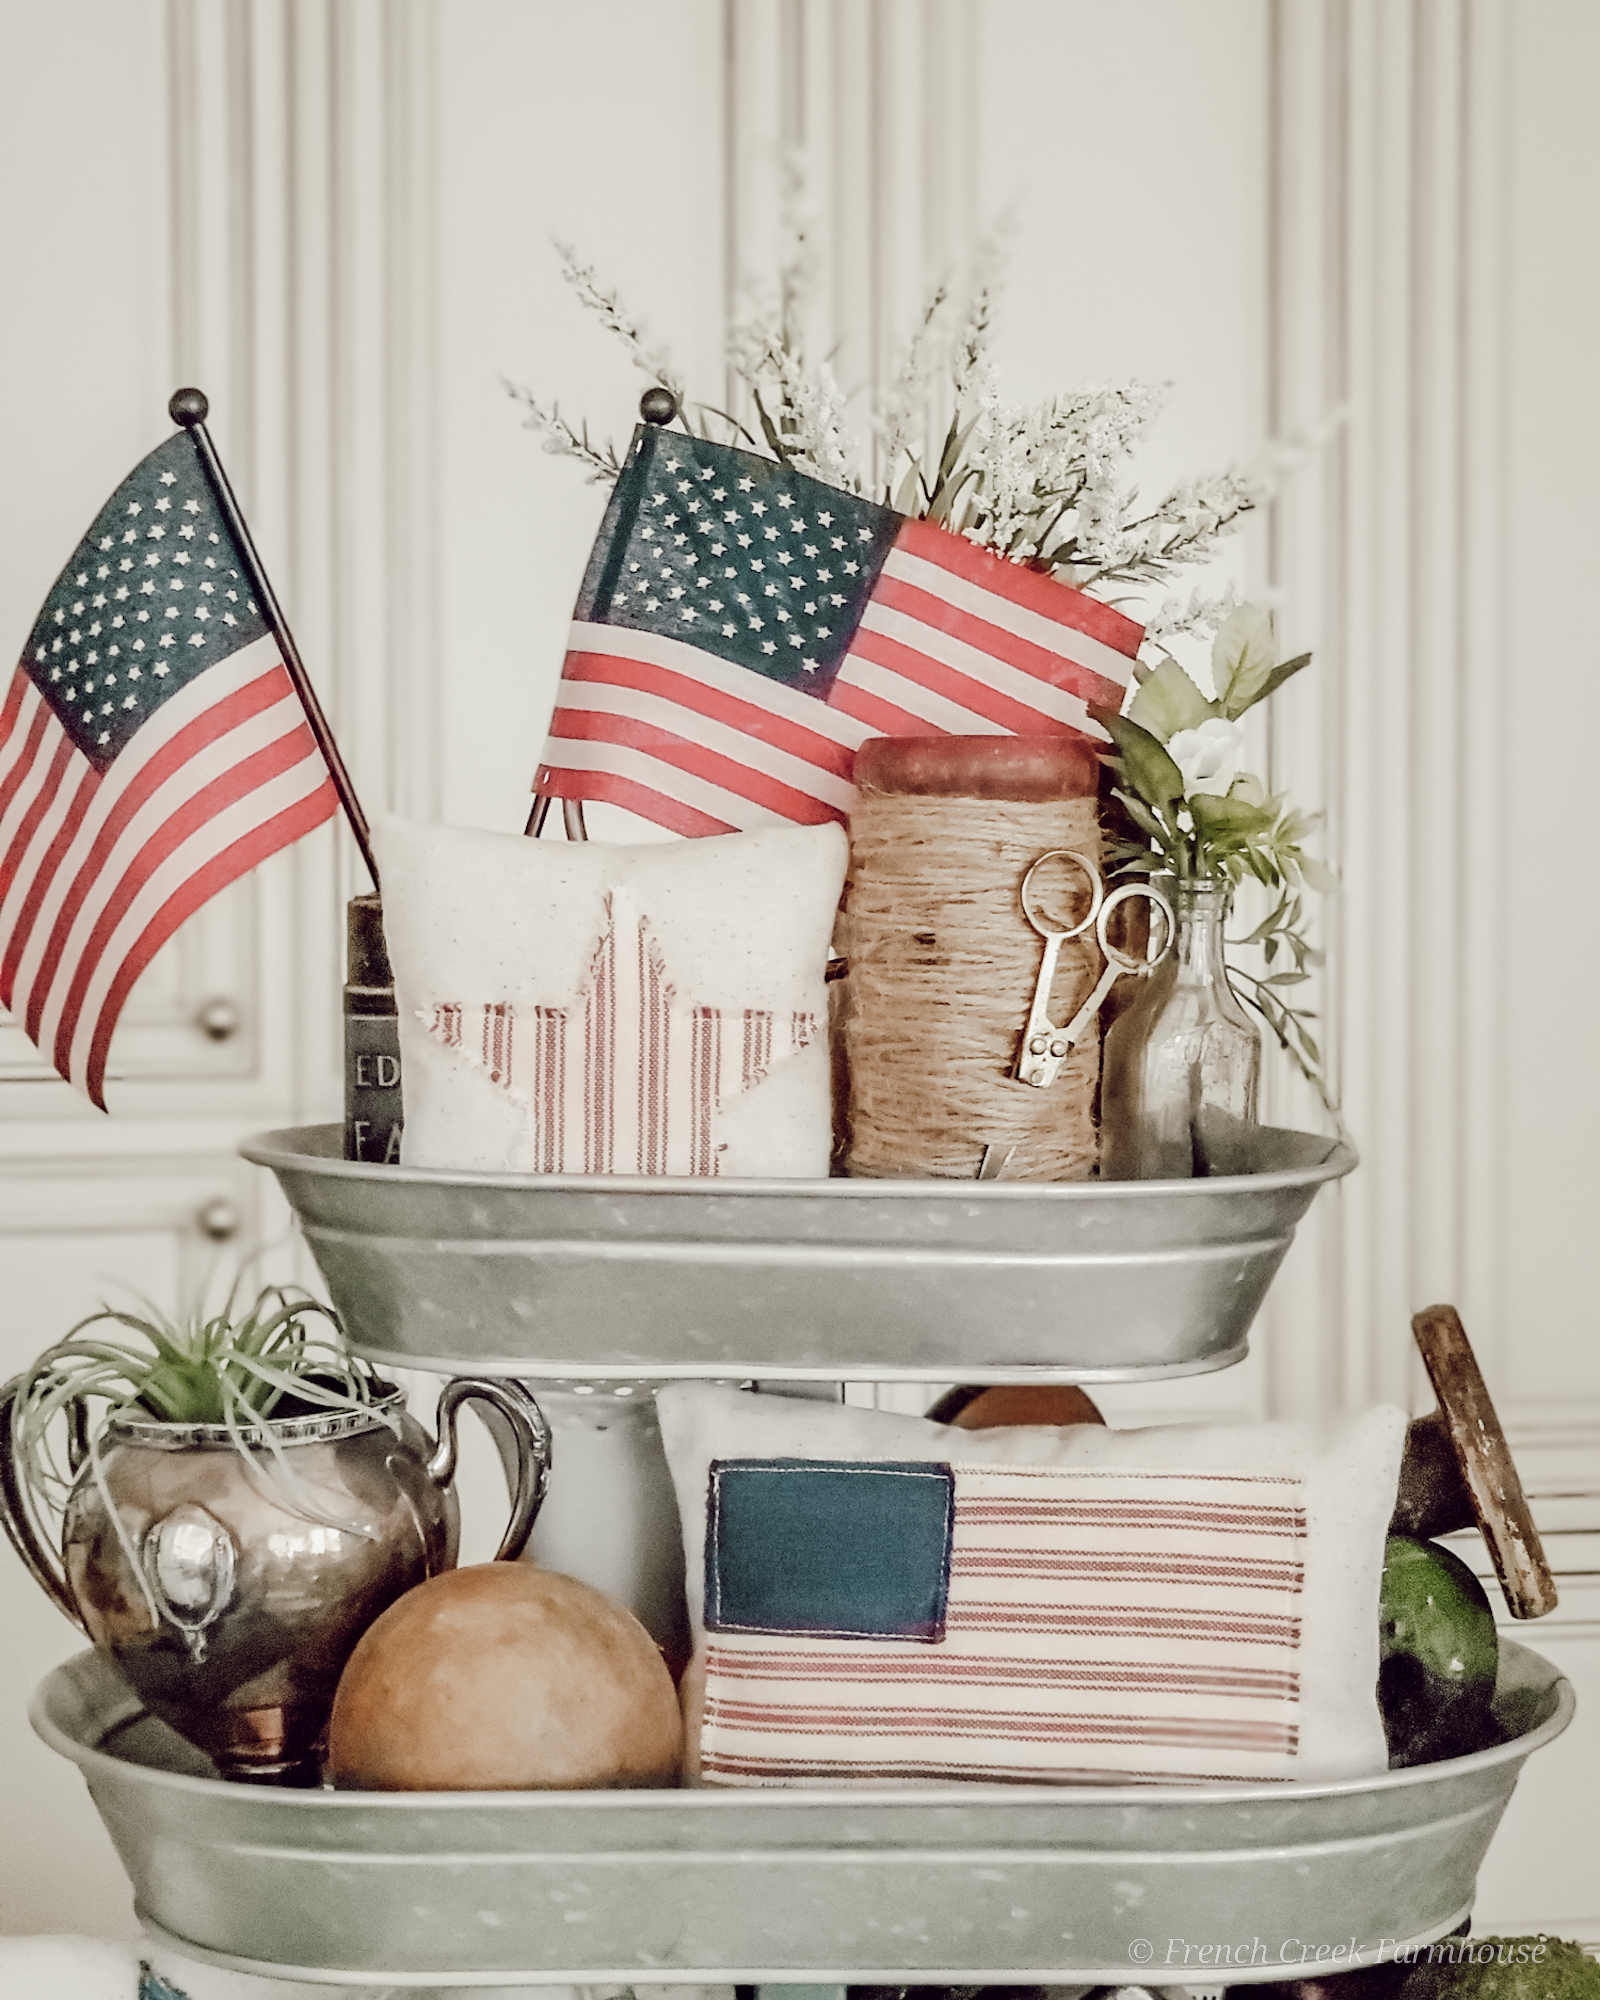 Vintage and American flag decor in a tiered tray